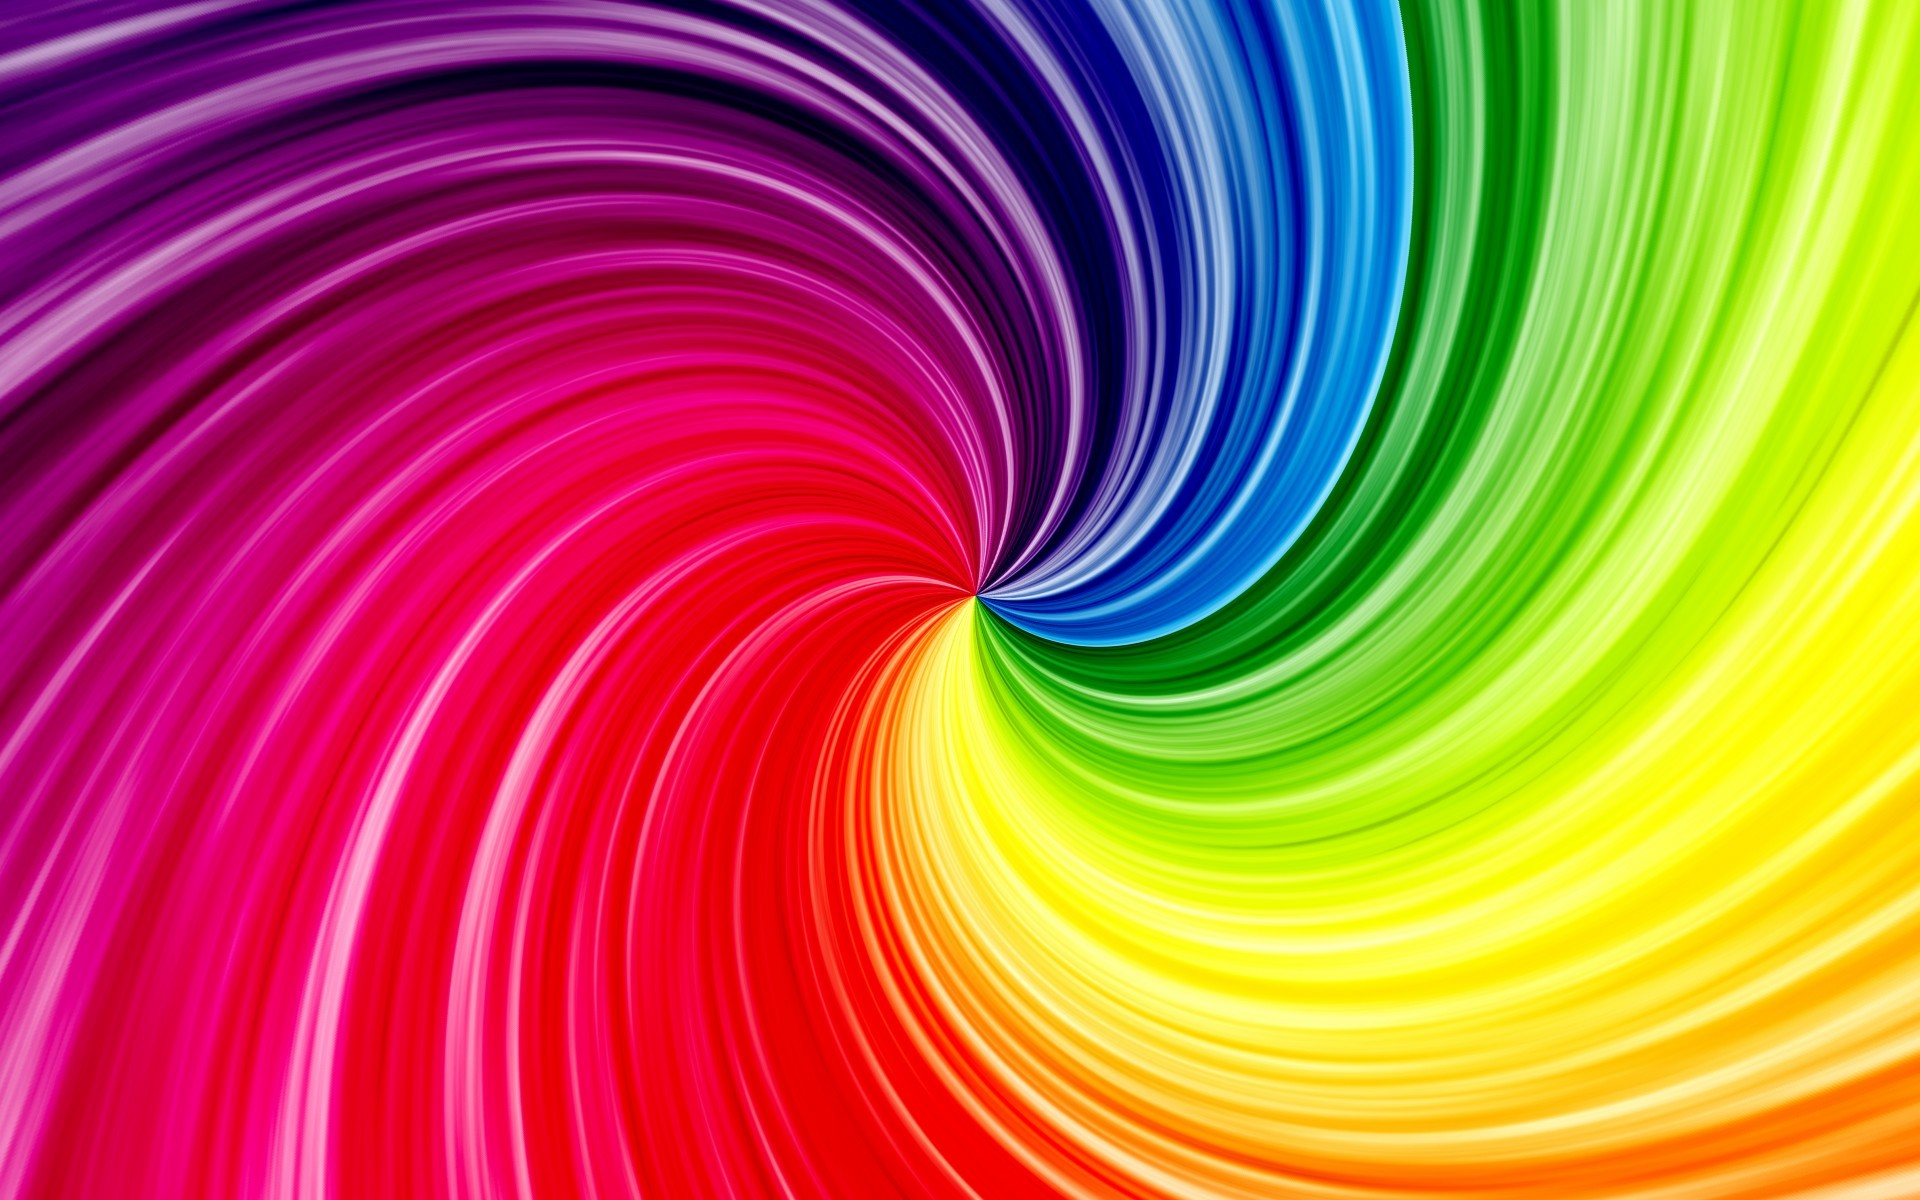 1920x1200 Bright Colorful Waves F Wallpaper At 3d Wallpapers